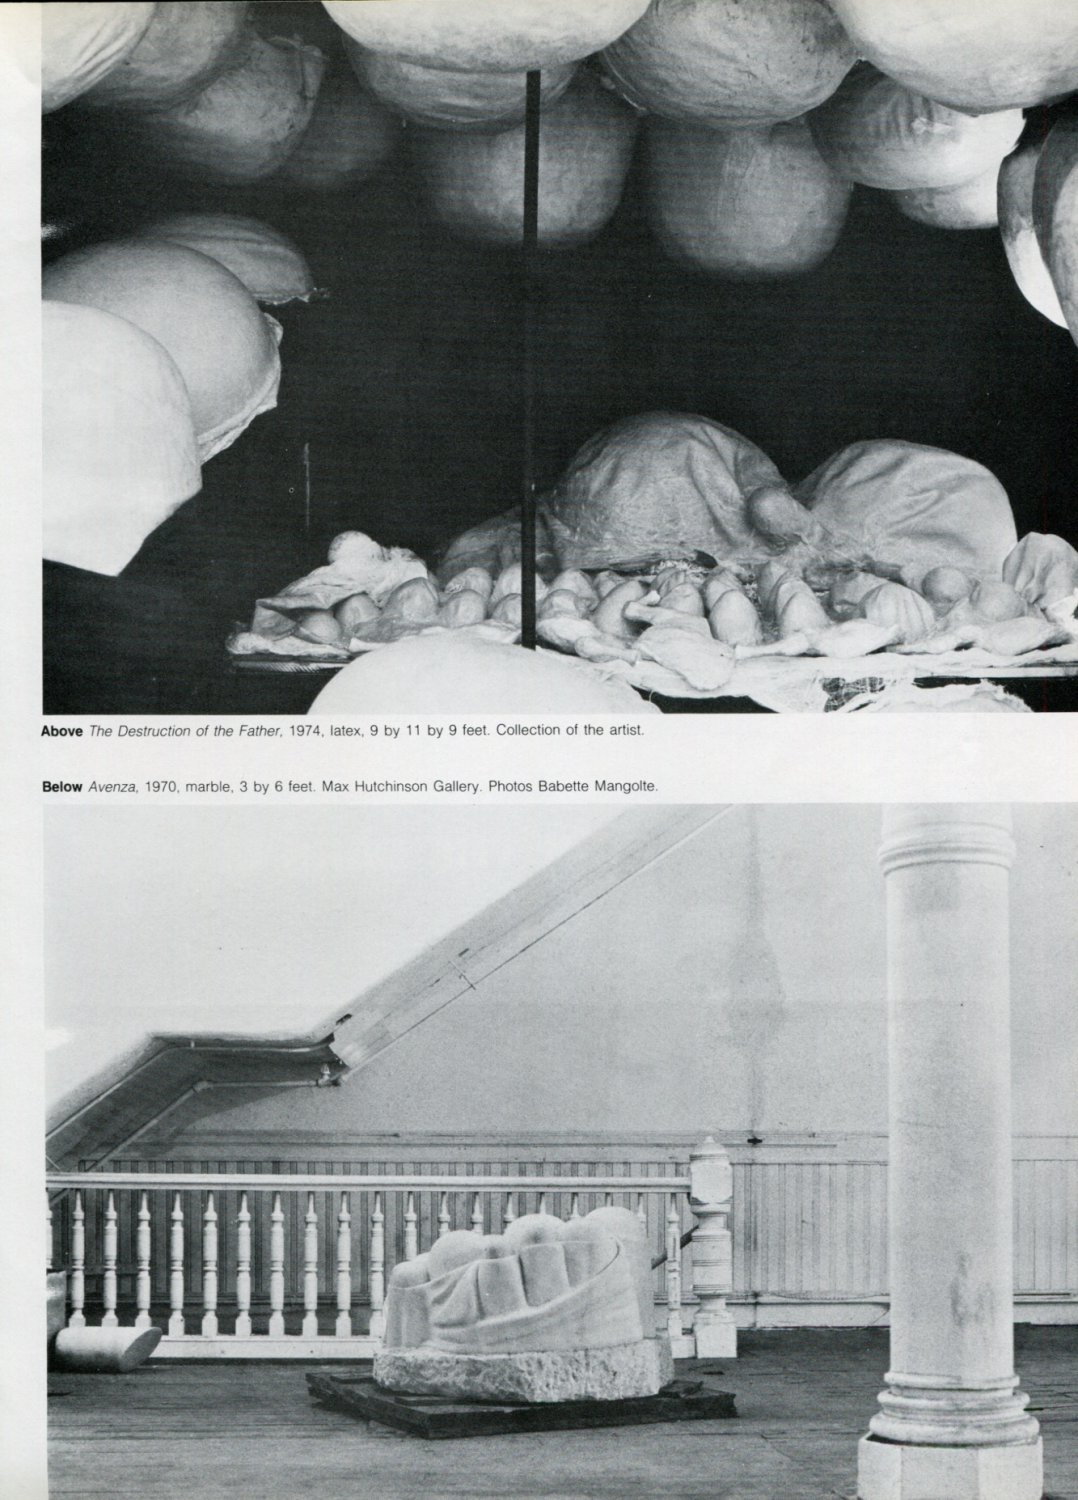 1975 Louise Bourgeois An Iconography of Abstraction 1975 Magazine Article by Carl R. Baldwin